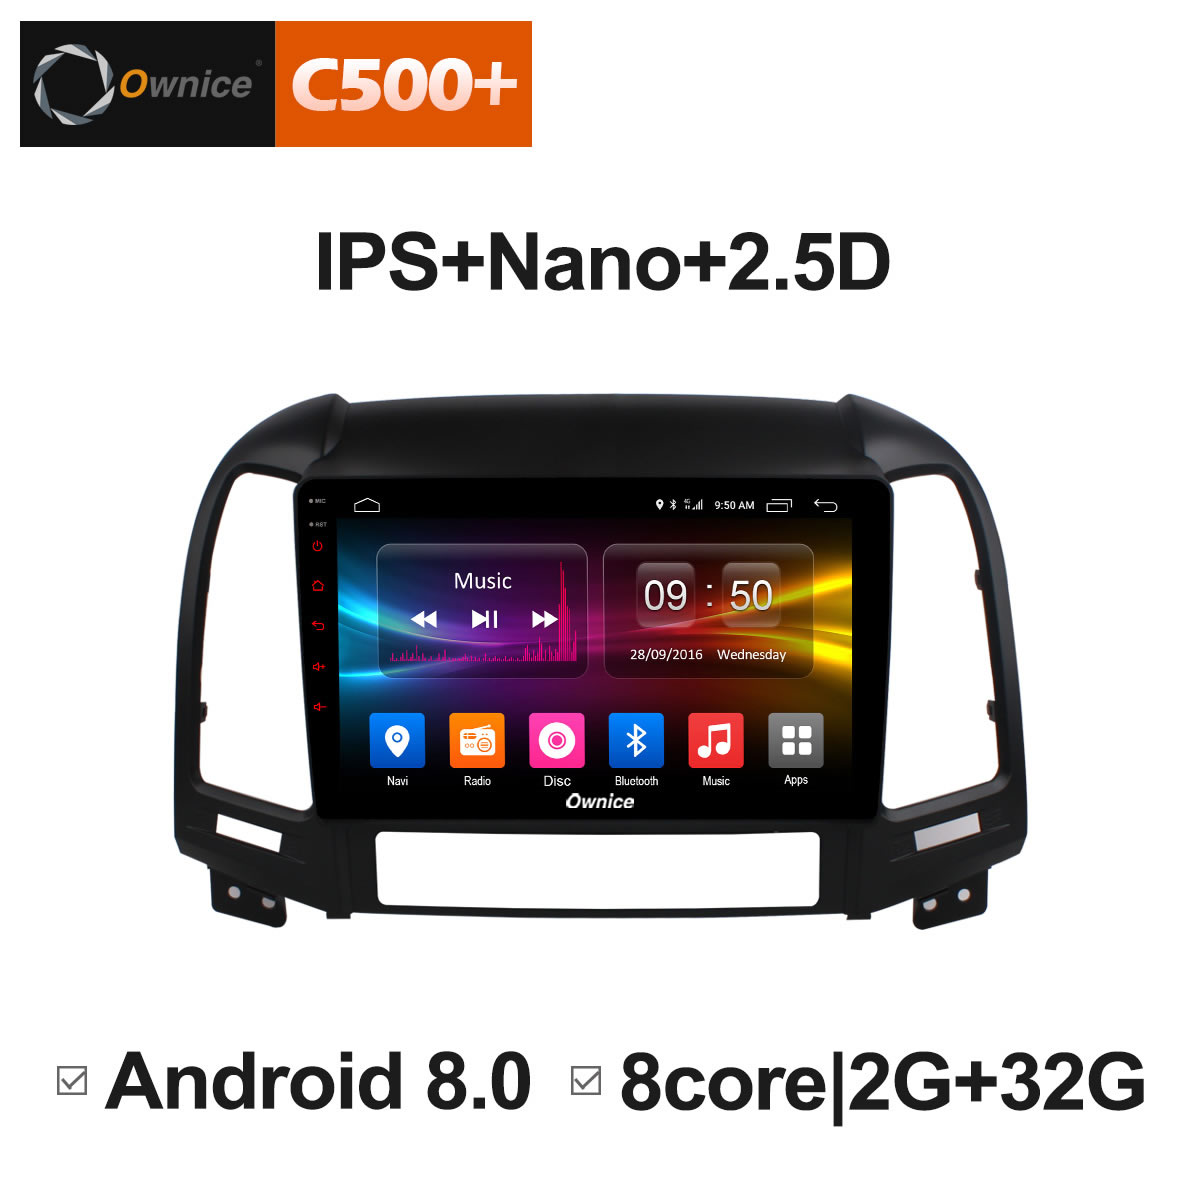 Штатная магнитола CARMEDIA OL-9717 (Ownice C500+) Hyundai Santa Fe 2010-2012 (рамка 3 и 4 кнопки) ourspop u07 quad core android 4 2 2 google tv player w 2gb ram 8gb rom rc11 air mouse eu plug